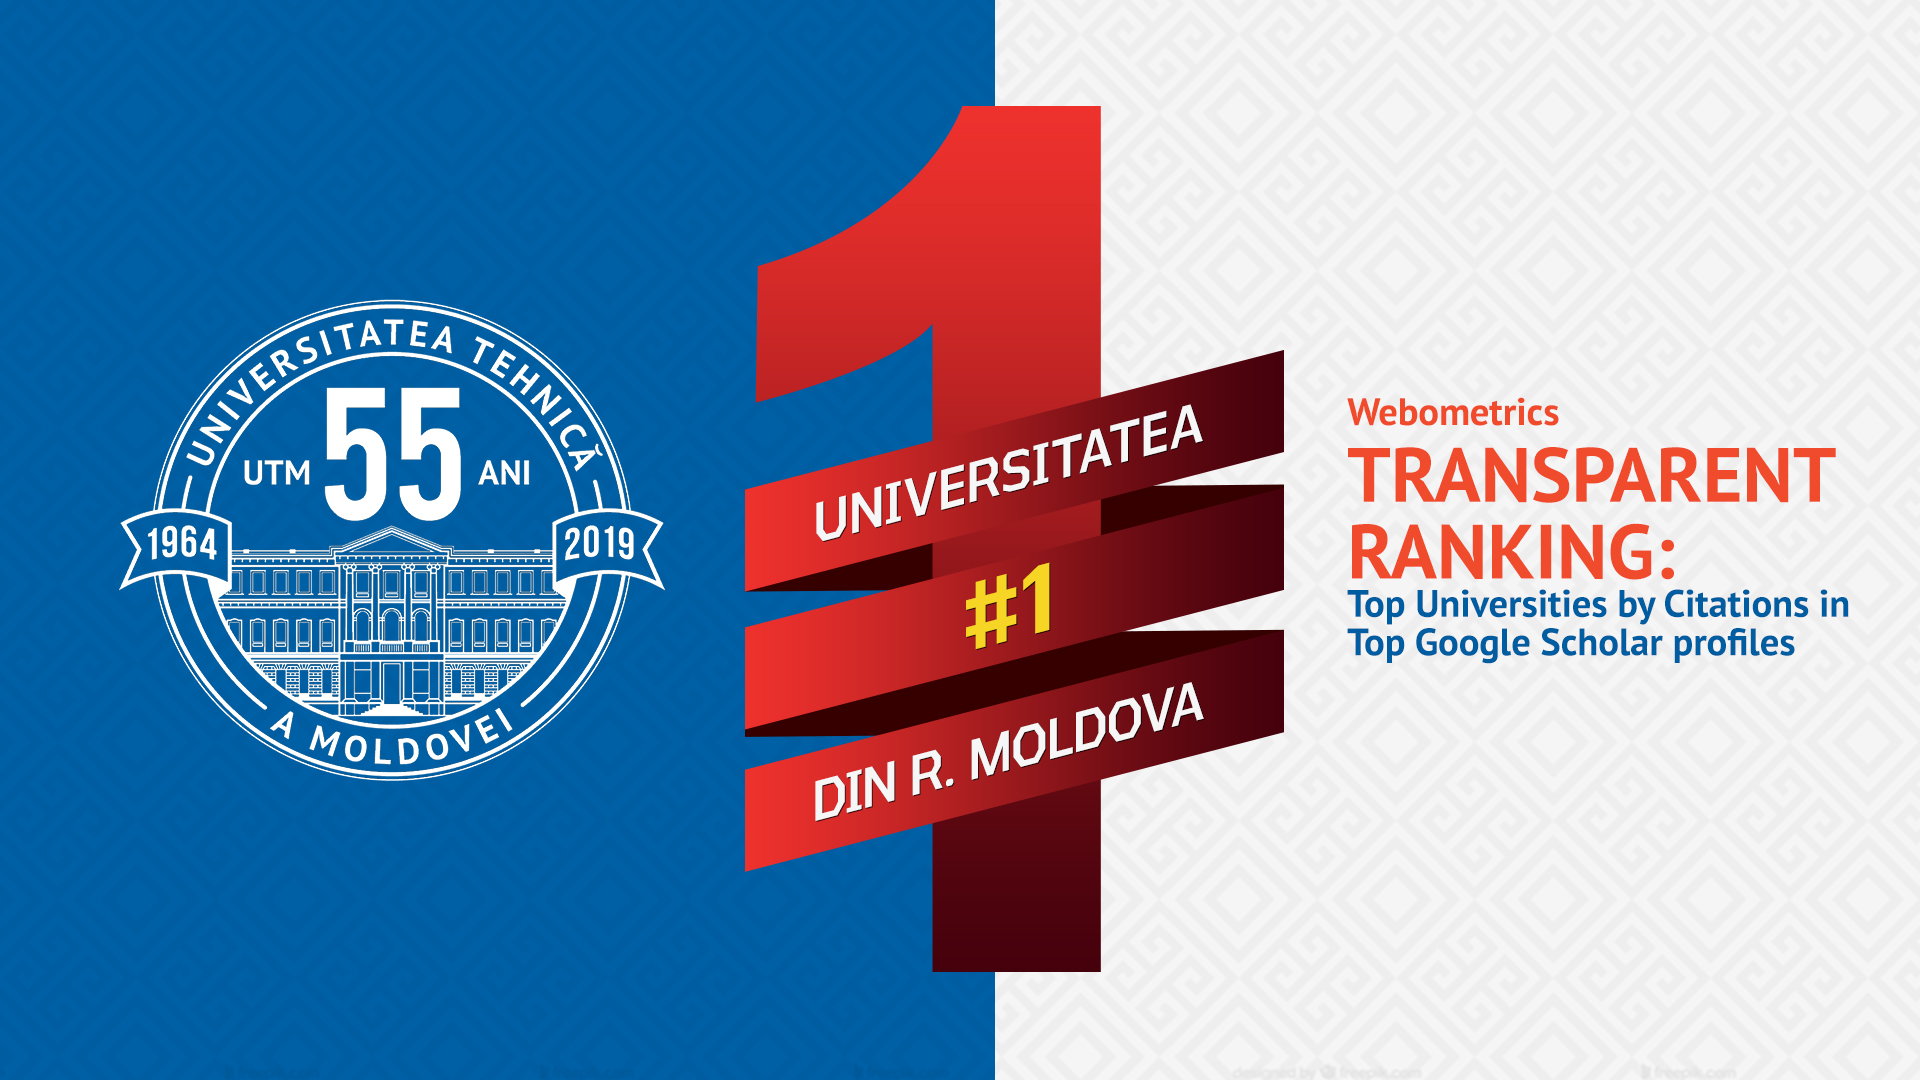 UTM, the leading position nationally in Webometrics, Top